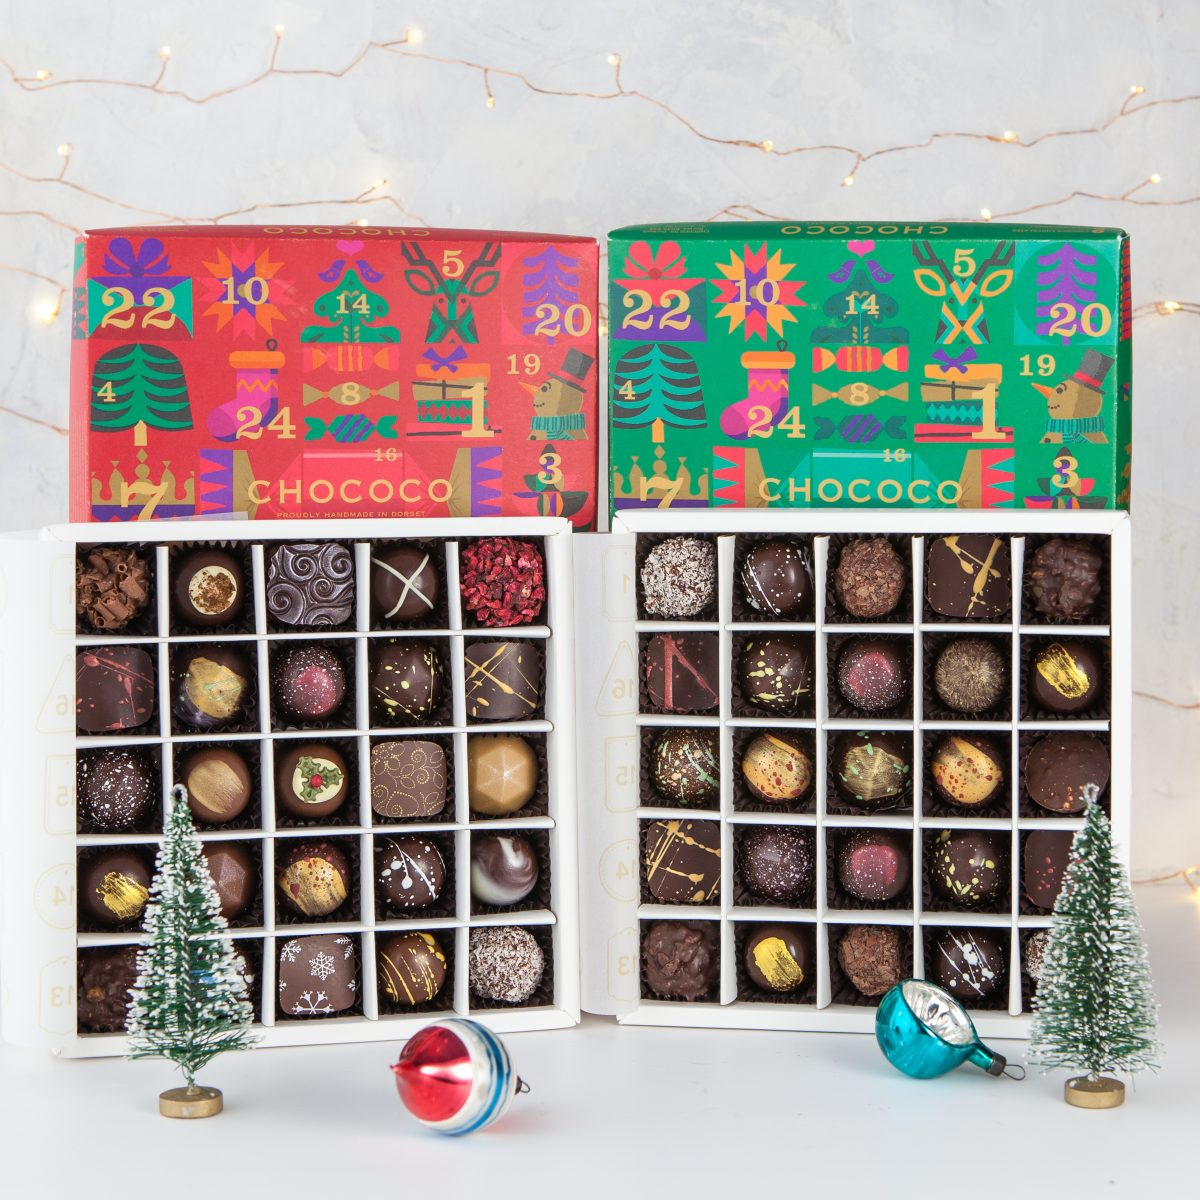 Best Advent Calendars 2019, vegan Advent Calendars 2019, vegan Advent Calendar